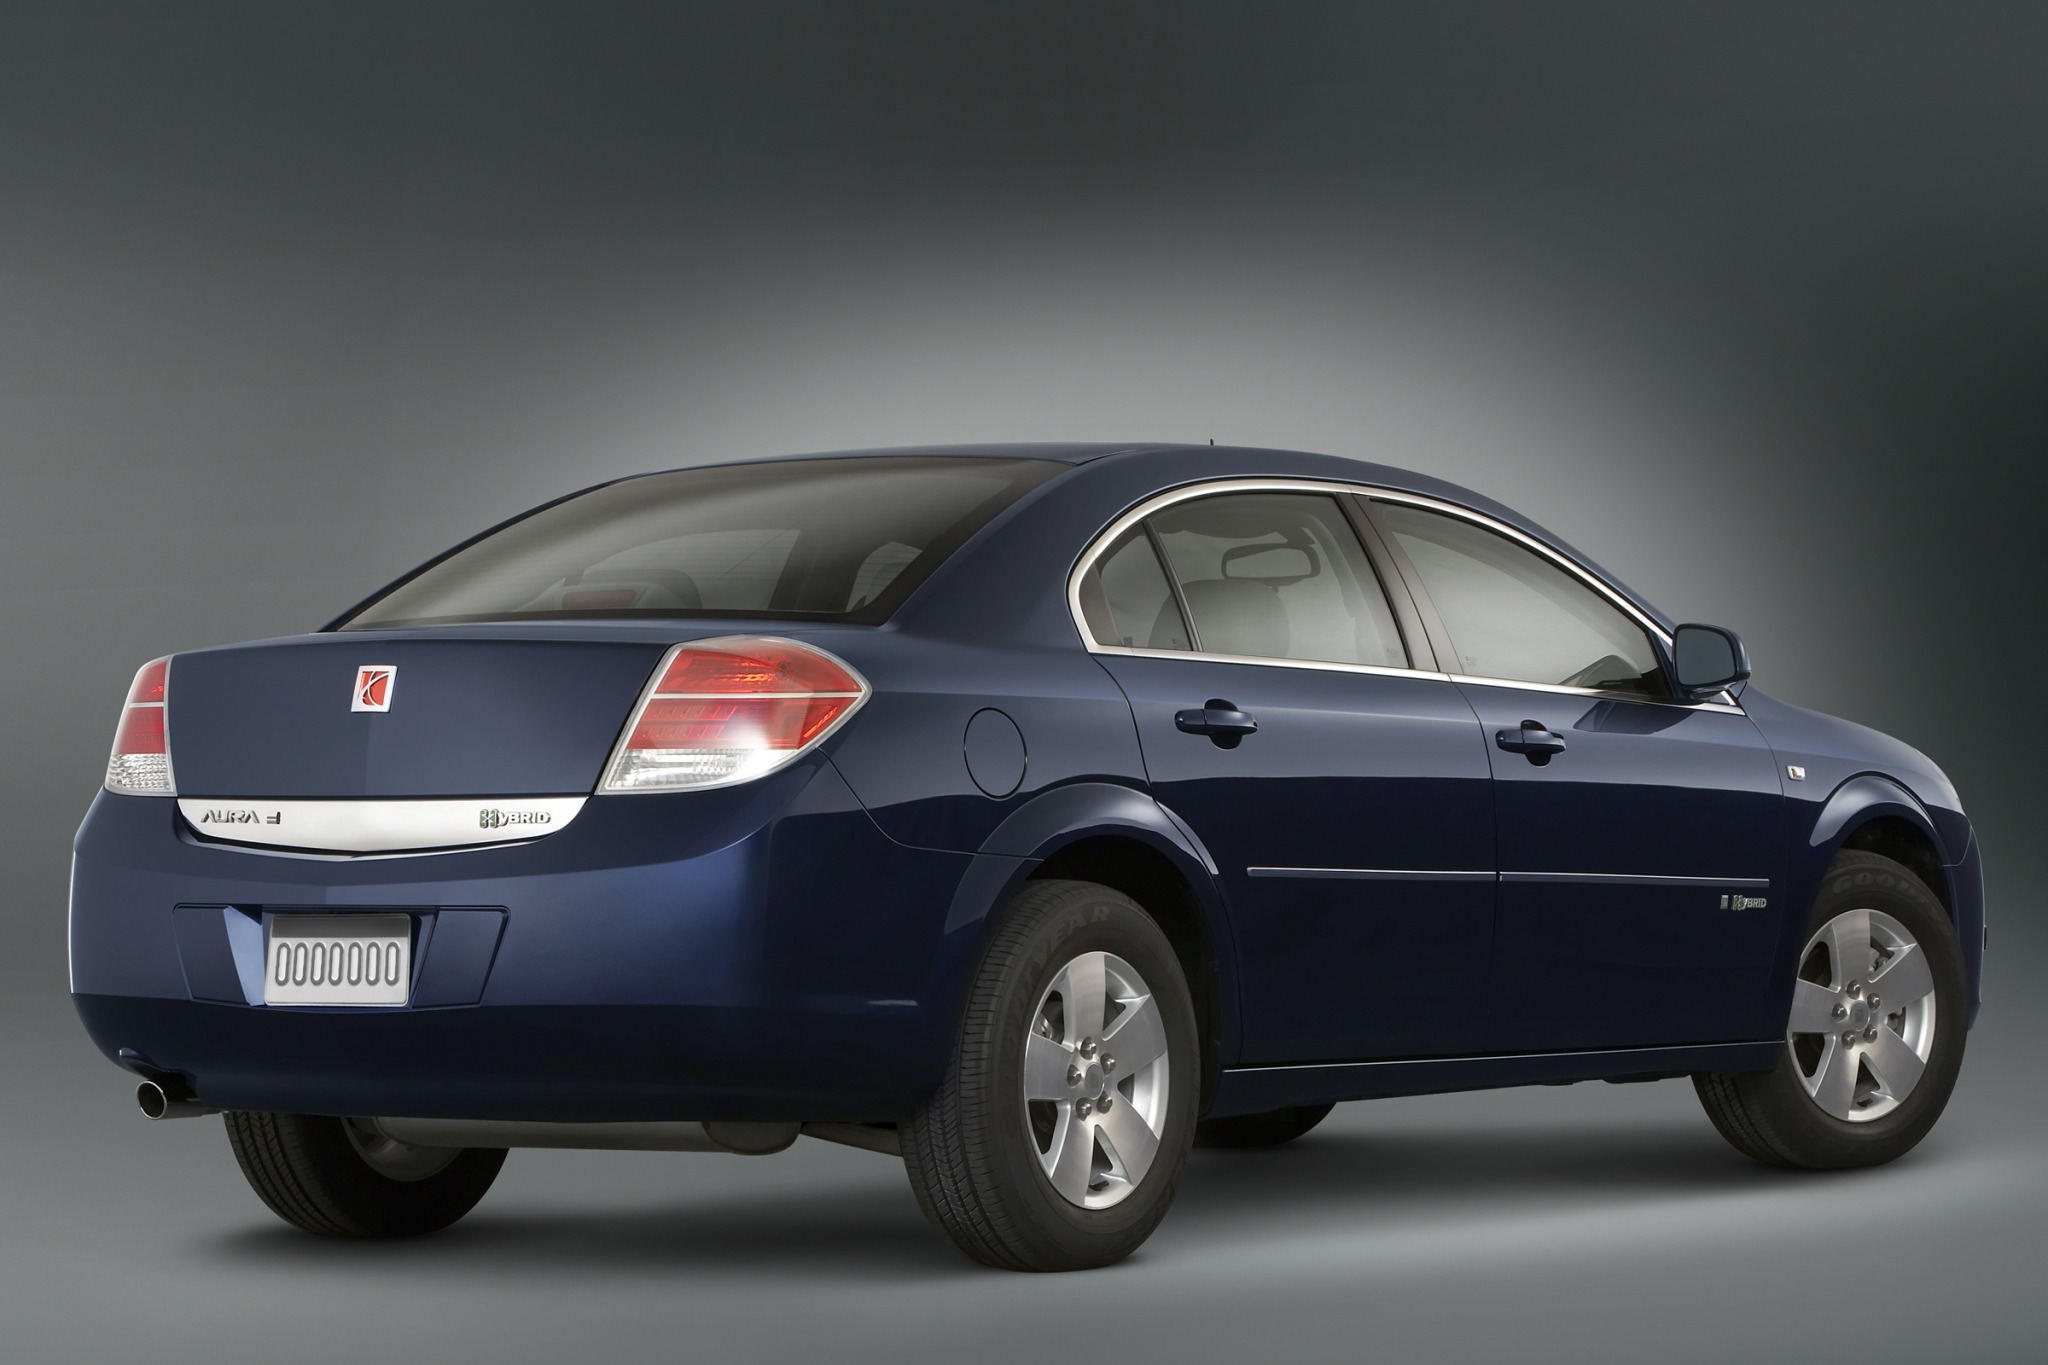 2007 Saturn Aura XR Sedan exterior #3